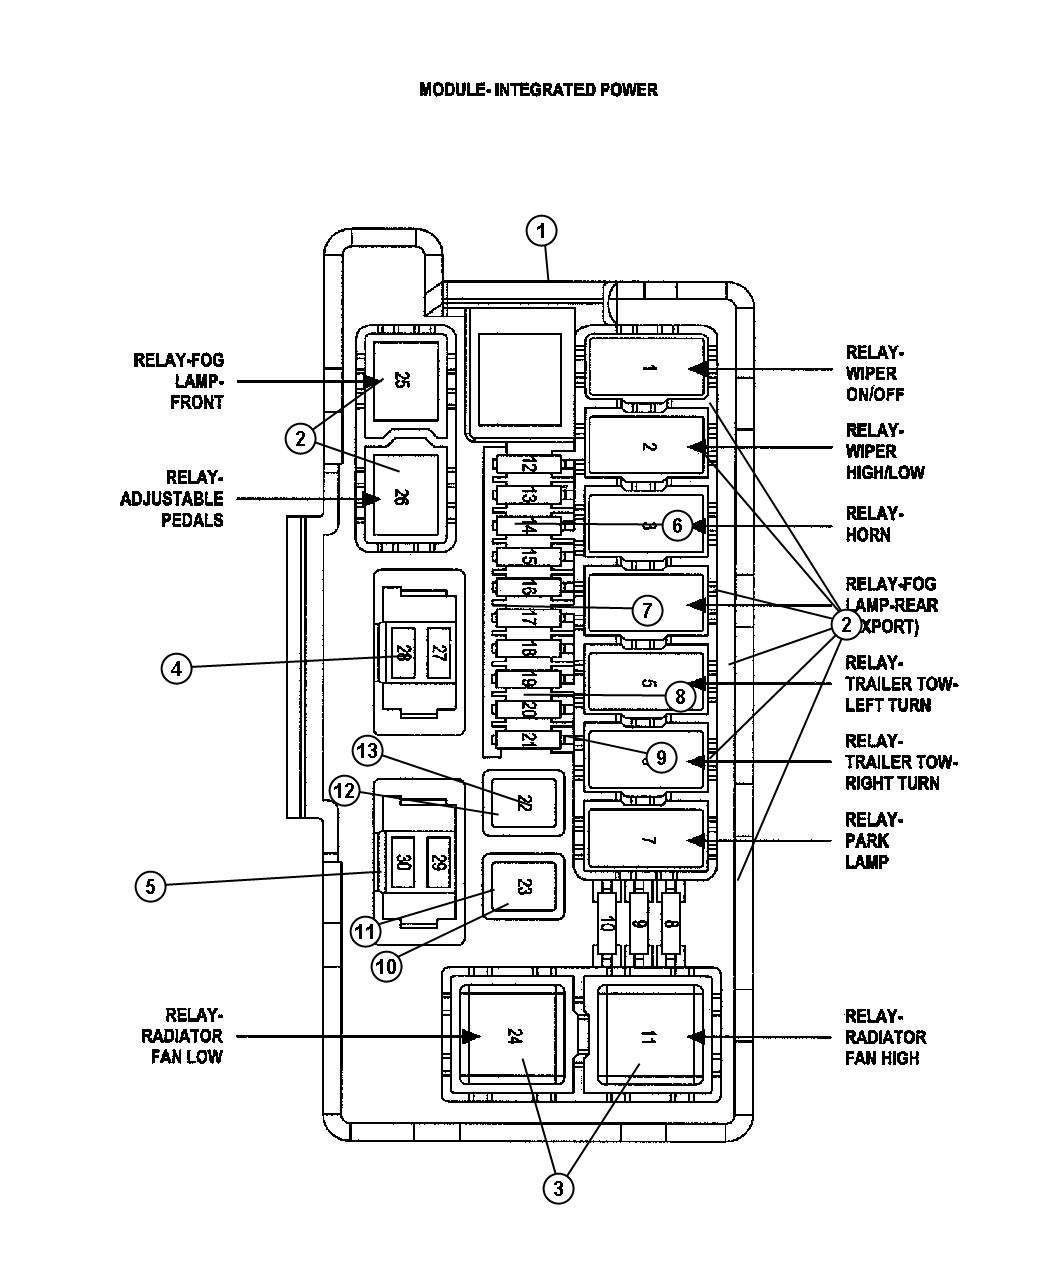 i2195904 2000 jeep cherokee stereo wiring diagram panel 2000 jeep cherokee c&r panel wiring diagram at webbmarketing.co